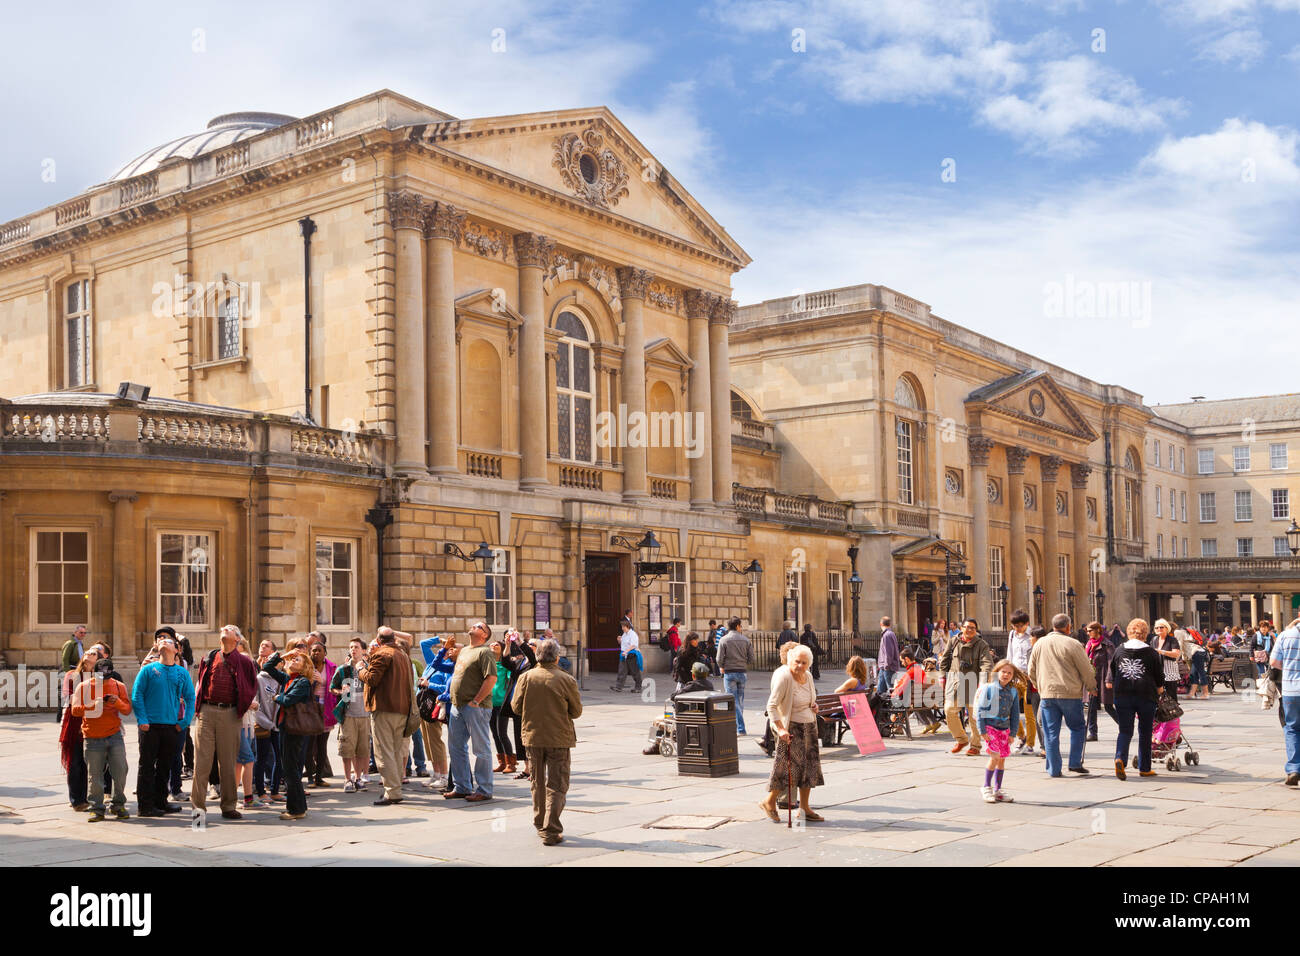 Crowds in front of the Roman Baths in Bath, Somerset, England, on a bright sunny day. - Stock Image